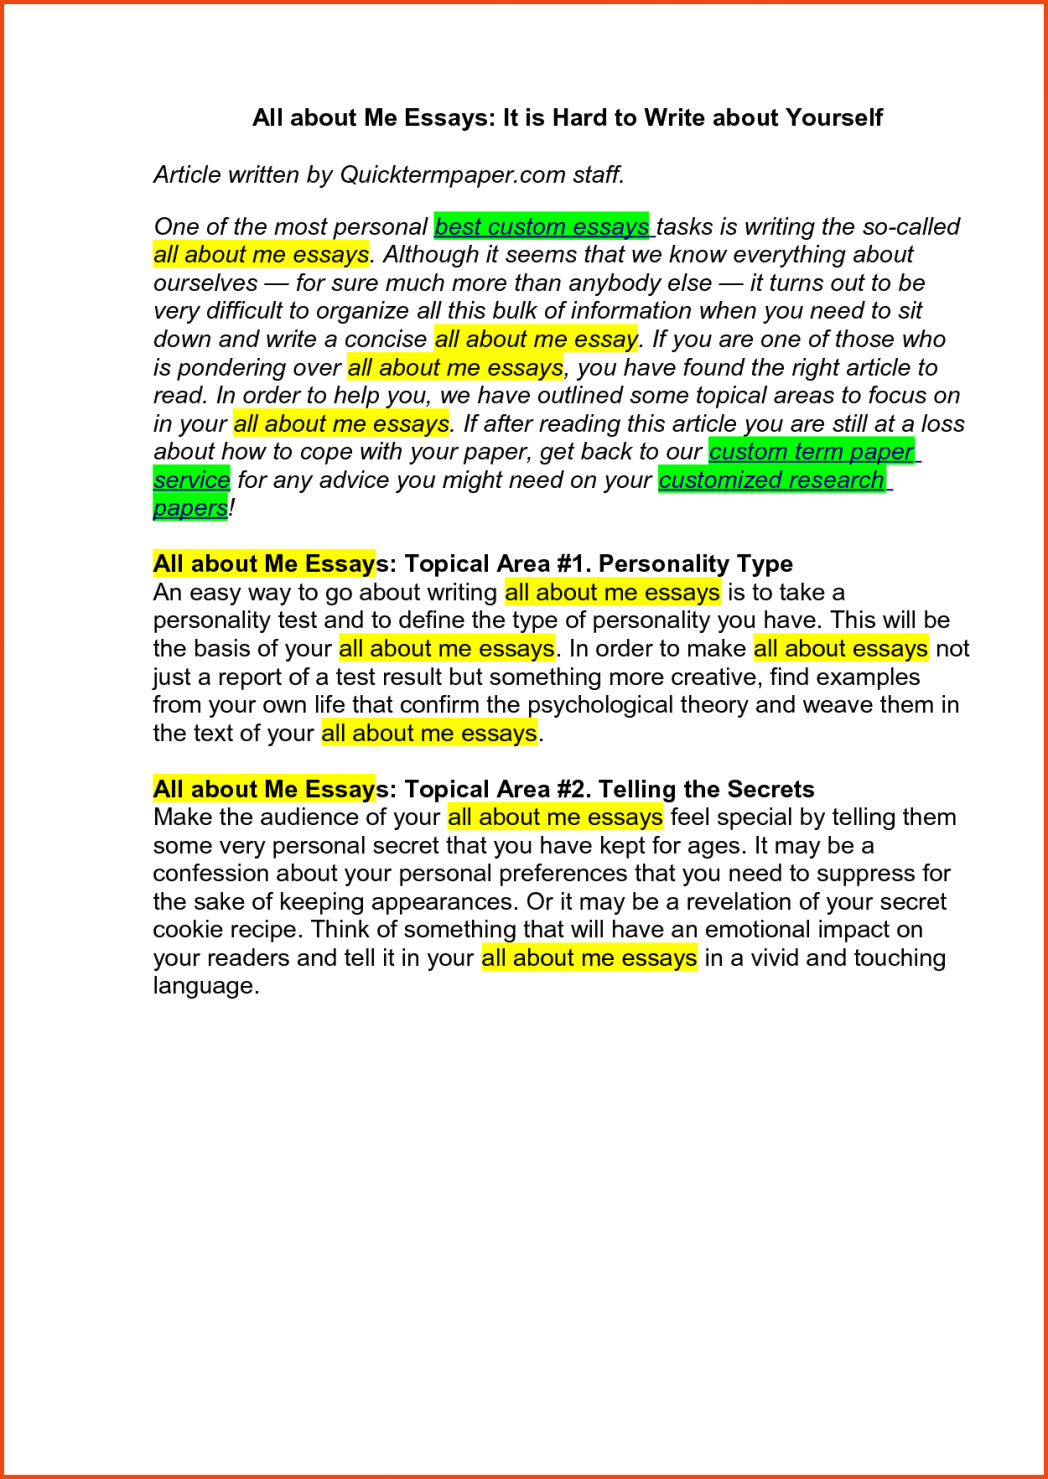 006 Essay Example Sample College Admissions Good Mba Essays School Application About Yourself For Examples Confortable Resume In Admis 1048x1479 Fascinating Write Job Full